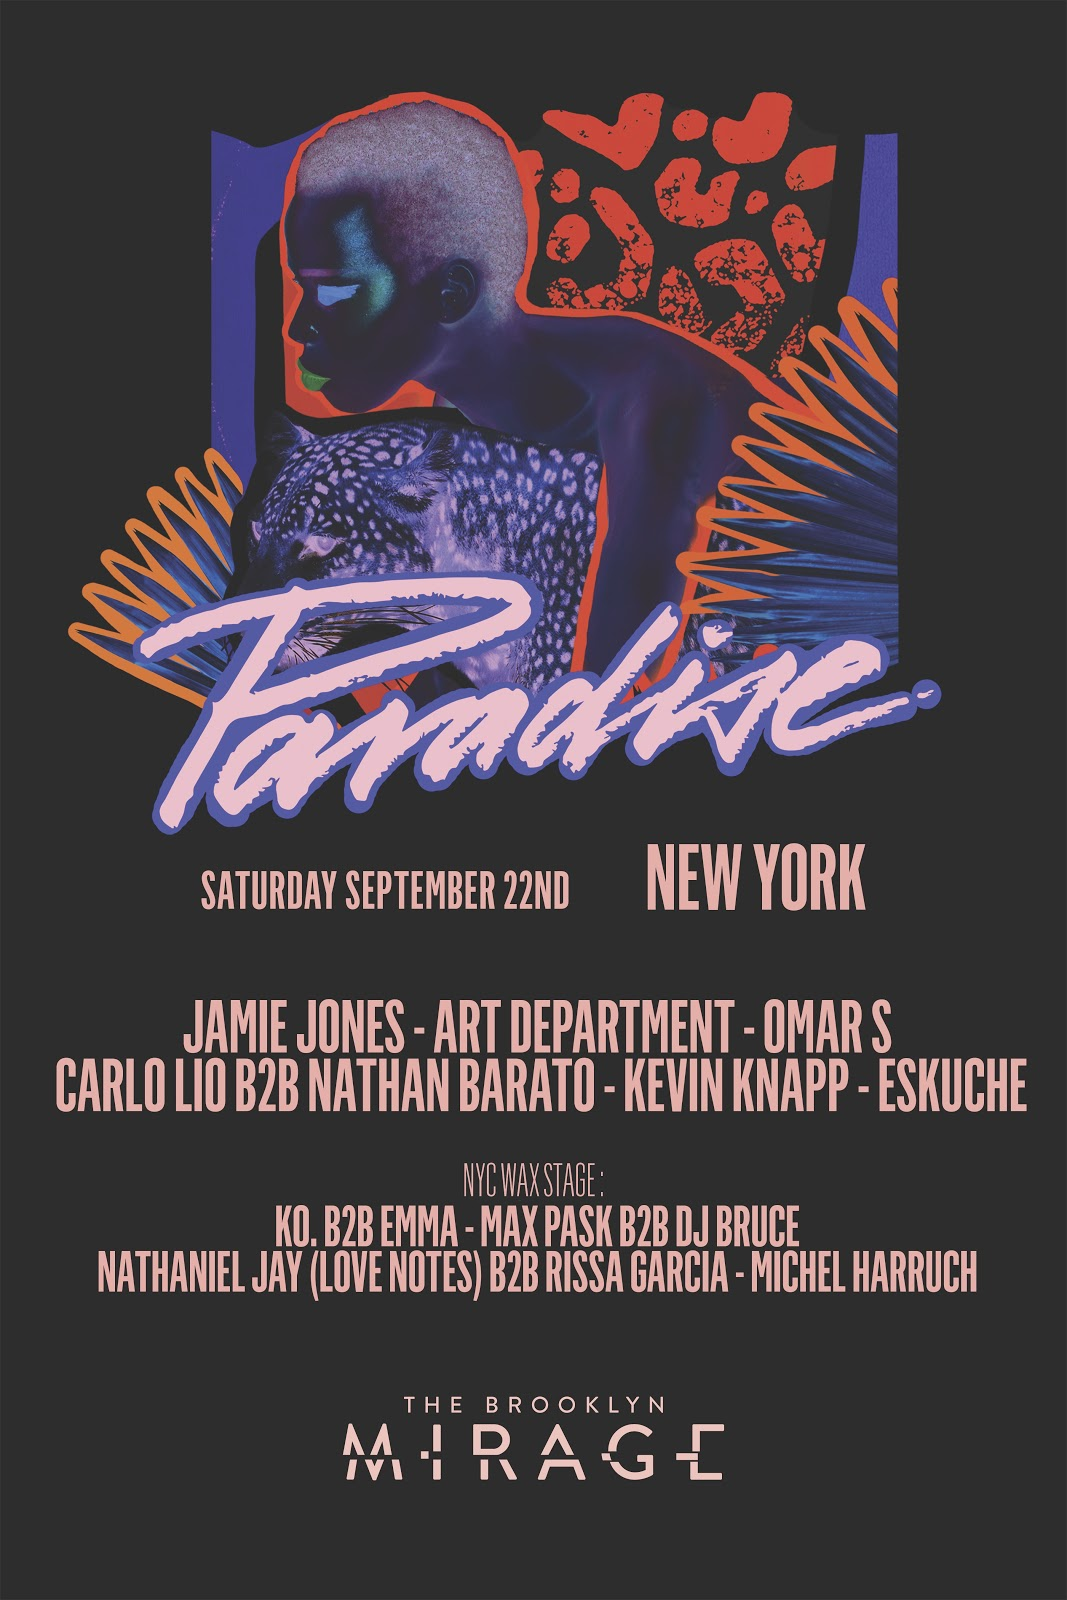 jamie jones' paradise festival to invade nyc in september | edm maniac